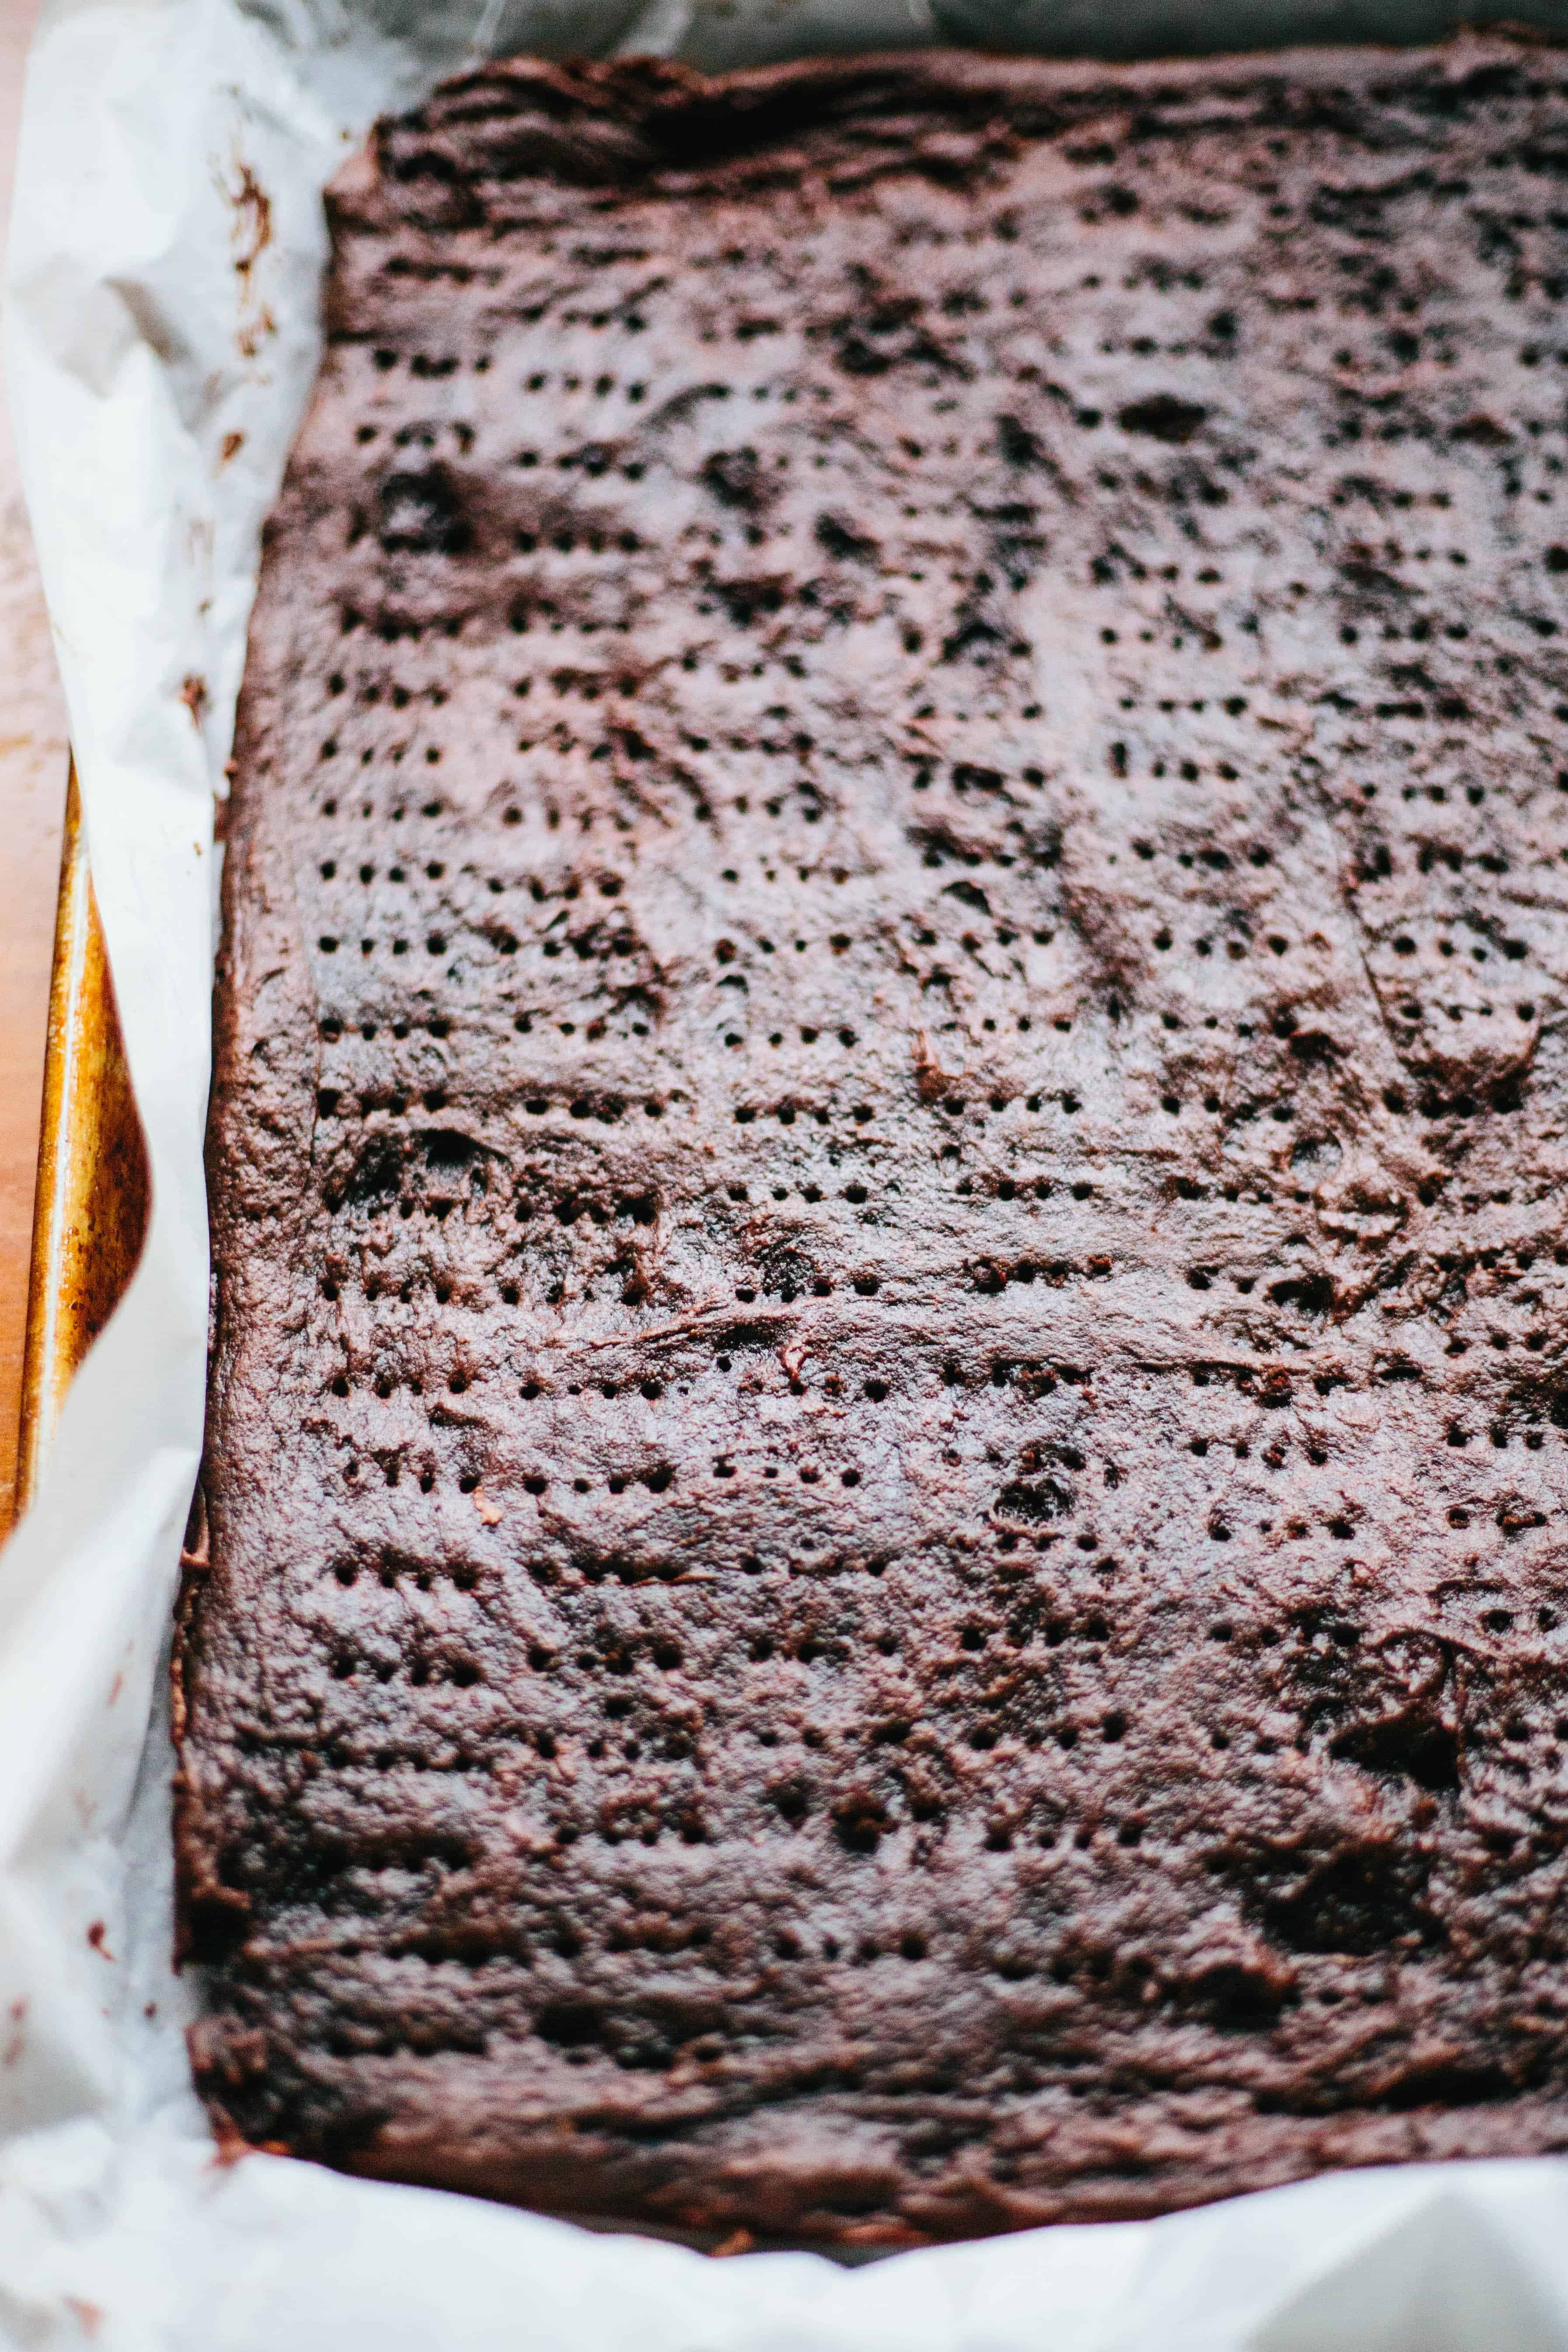 Giant baked chocolate sheet cookie for homemade ice cream sandwiches